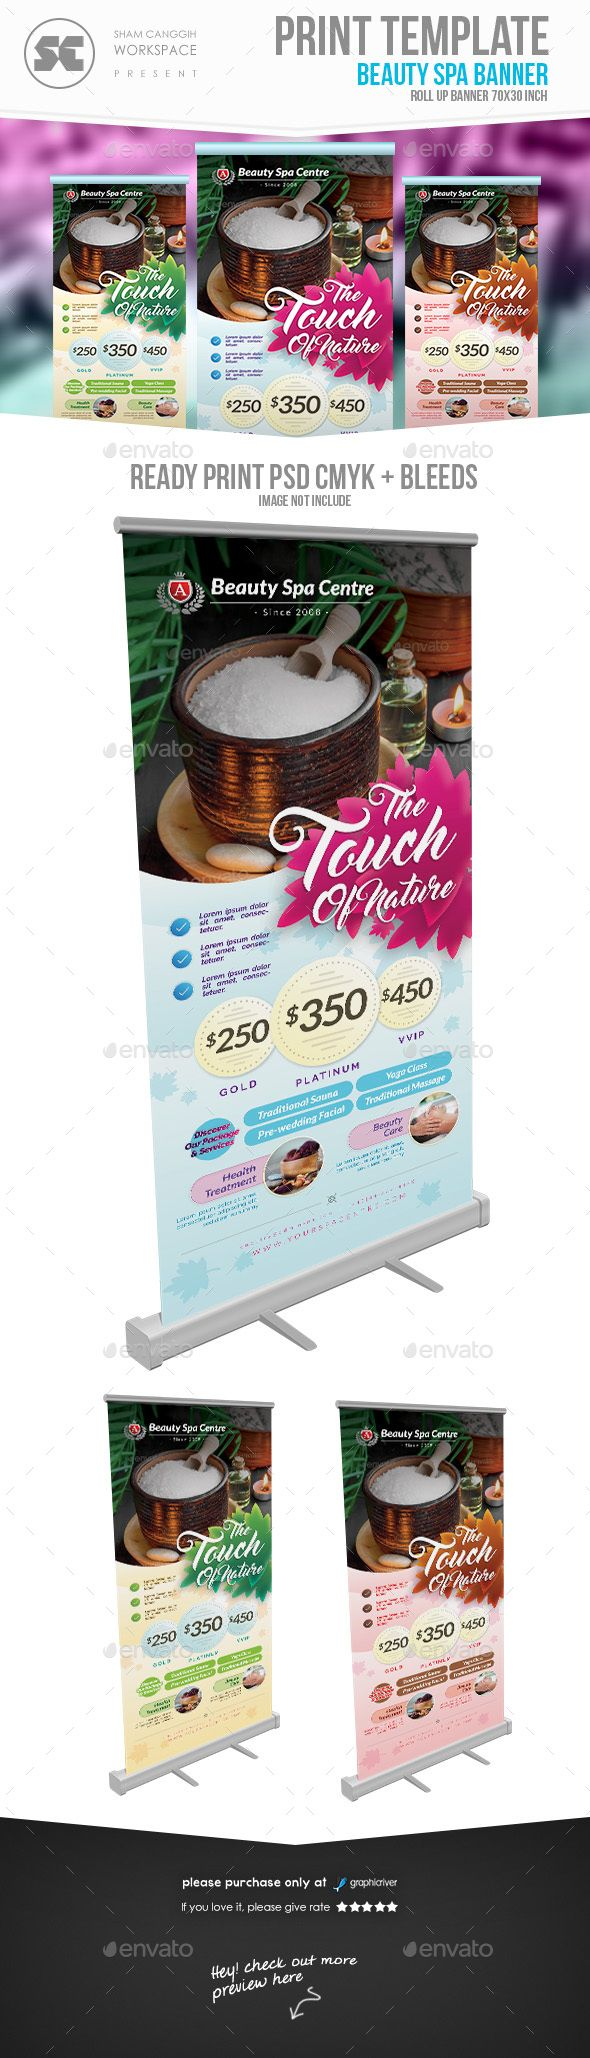 Beauty & Health Banner Template PSD